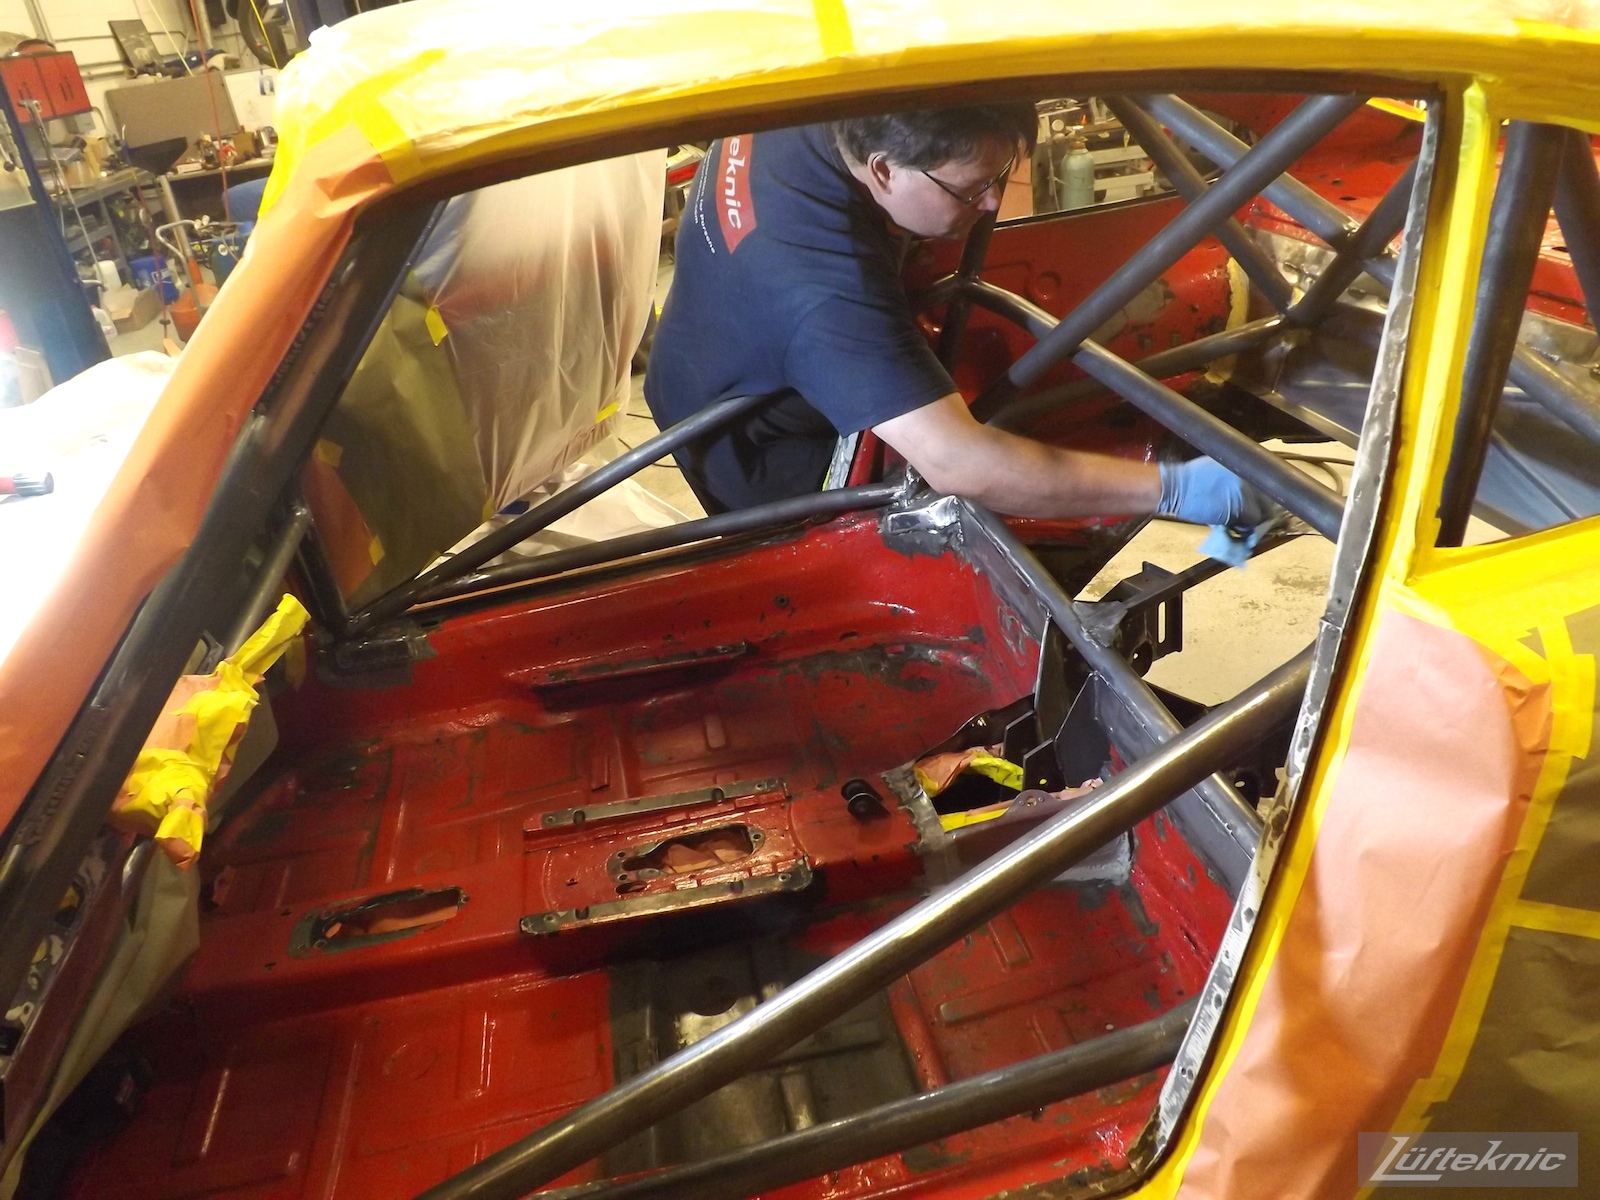 Raw roll cage in projectstuka before paint.